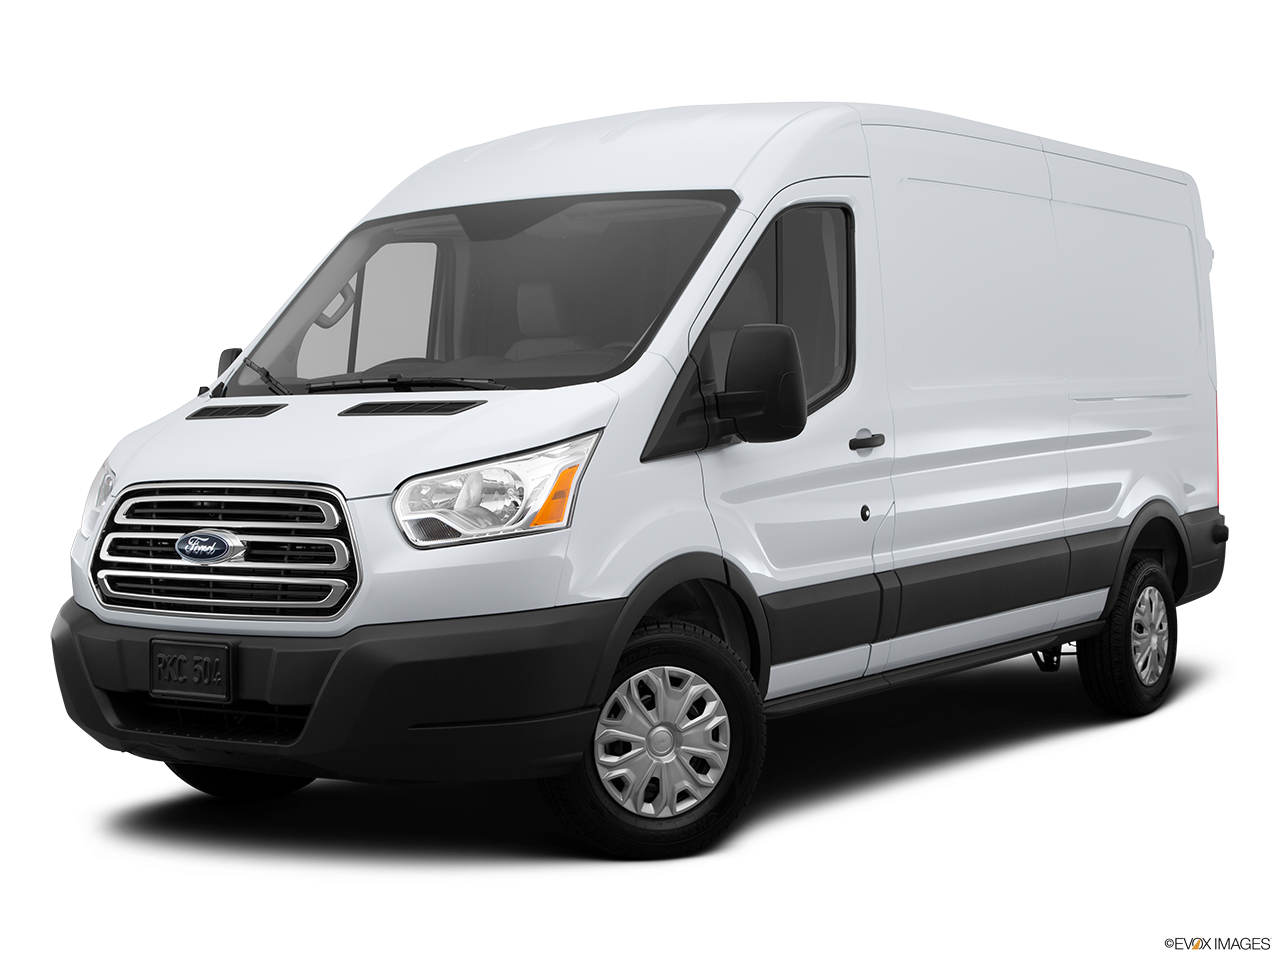 Test Drive A 2015 Ford Transit At Gosch Ford In Hemet Serving Riverside on power wagon parts